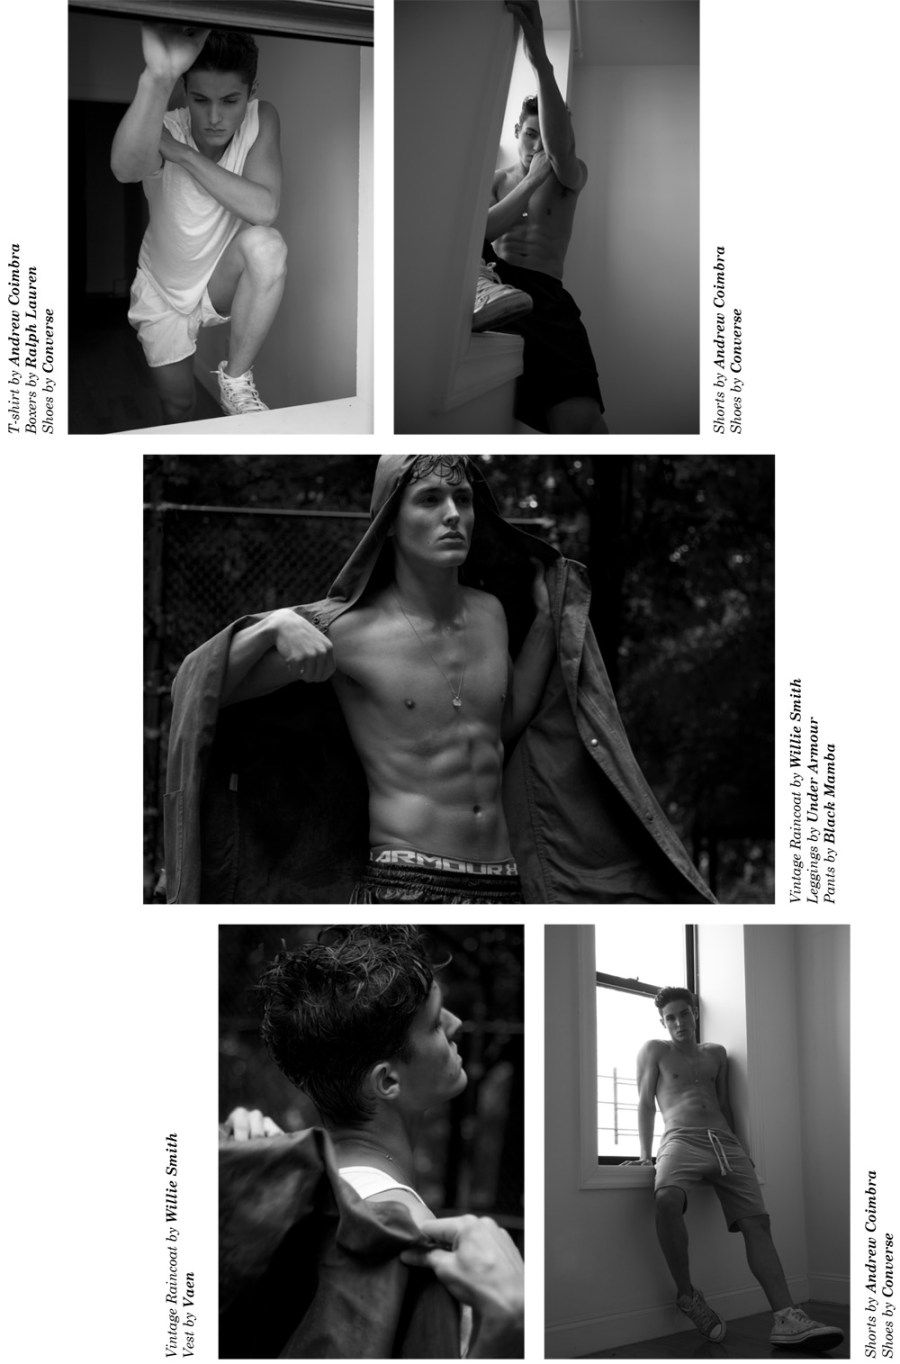 YEARBOOK presents: new story for Yearbook Fanzine with Colby Brittain at Kim Dawson Agency. Styled by Michael Fusco and Grooming by Chiala Marvici